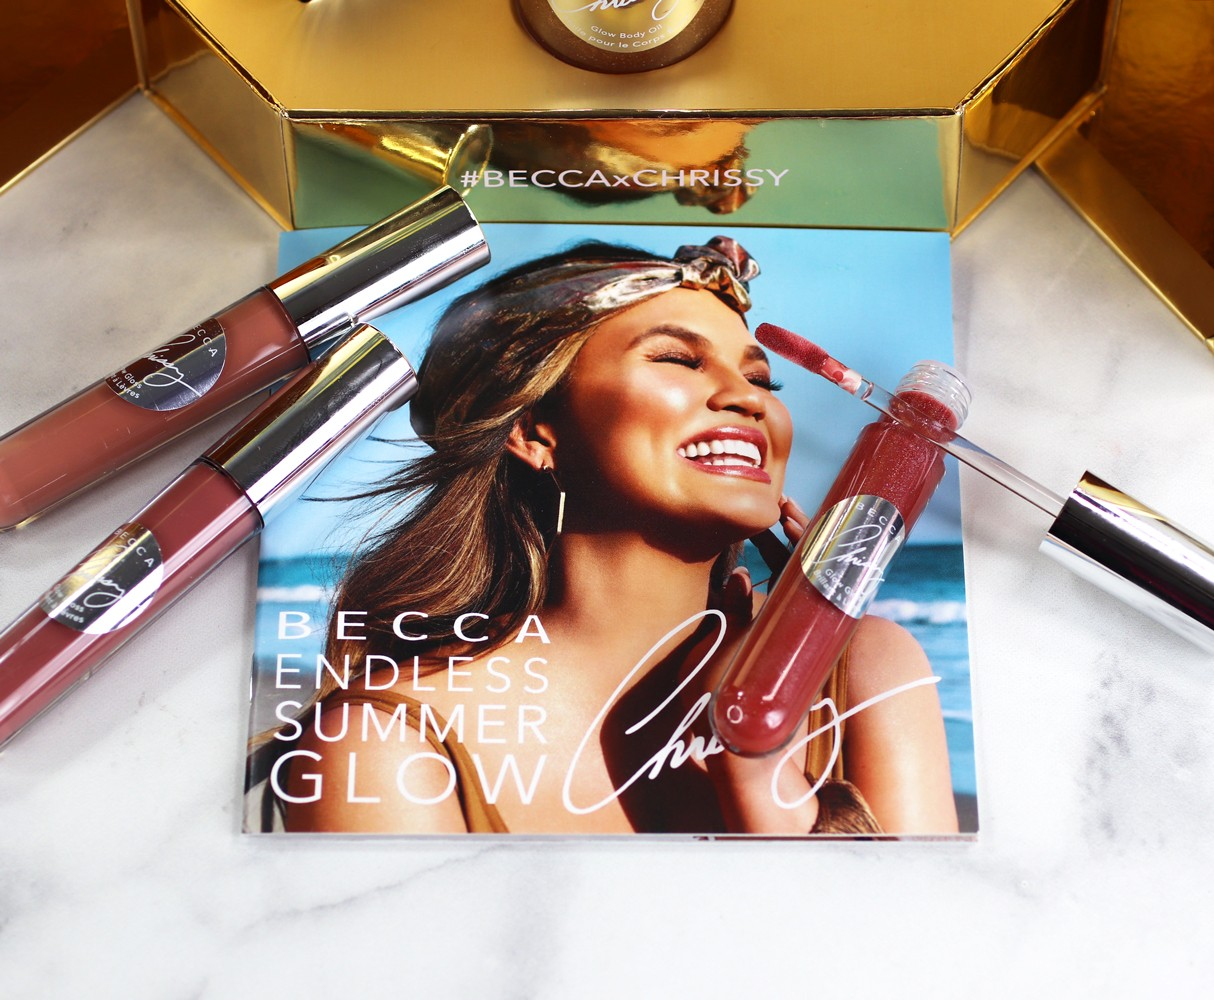 Becca x Chrissy Glow Gloss Chrissy Teigen - Becca Cosmetics Glow Gloss + Becca x Chrissy Teigen Swatches featured by popular Los Angeles cruelty free beauty blogger My Beauty Bunny